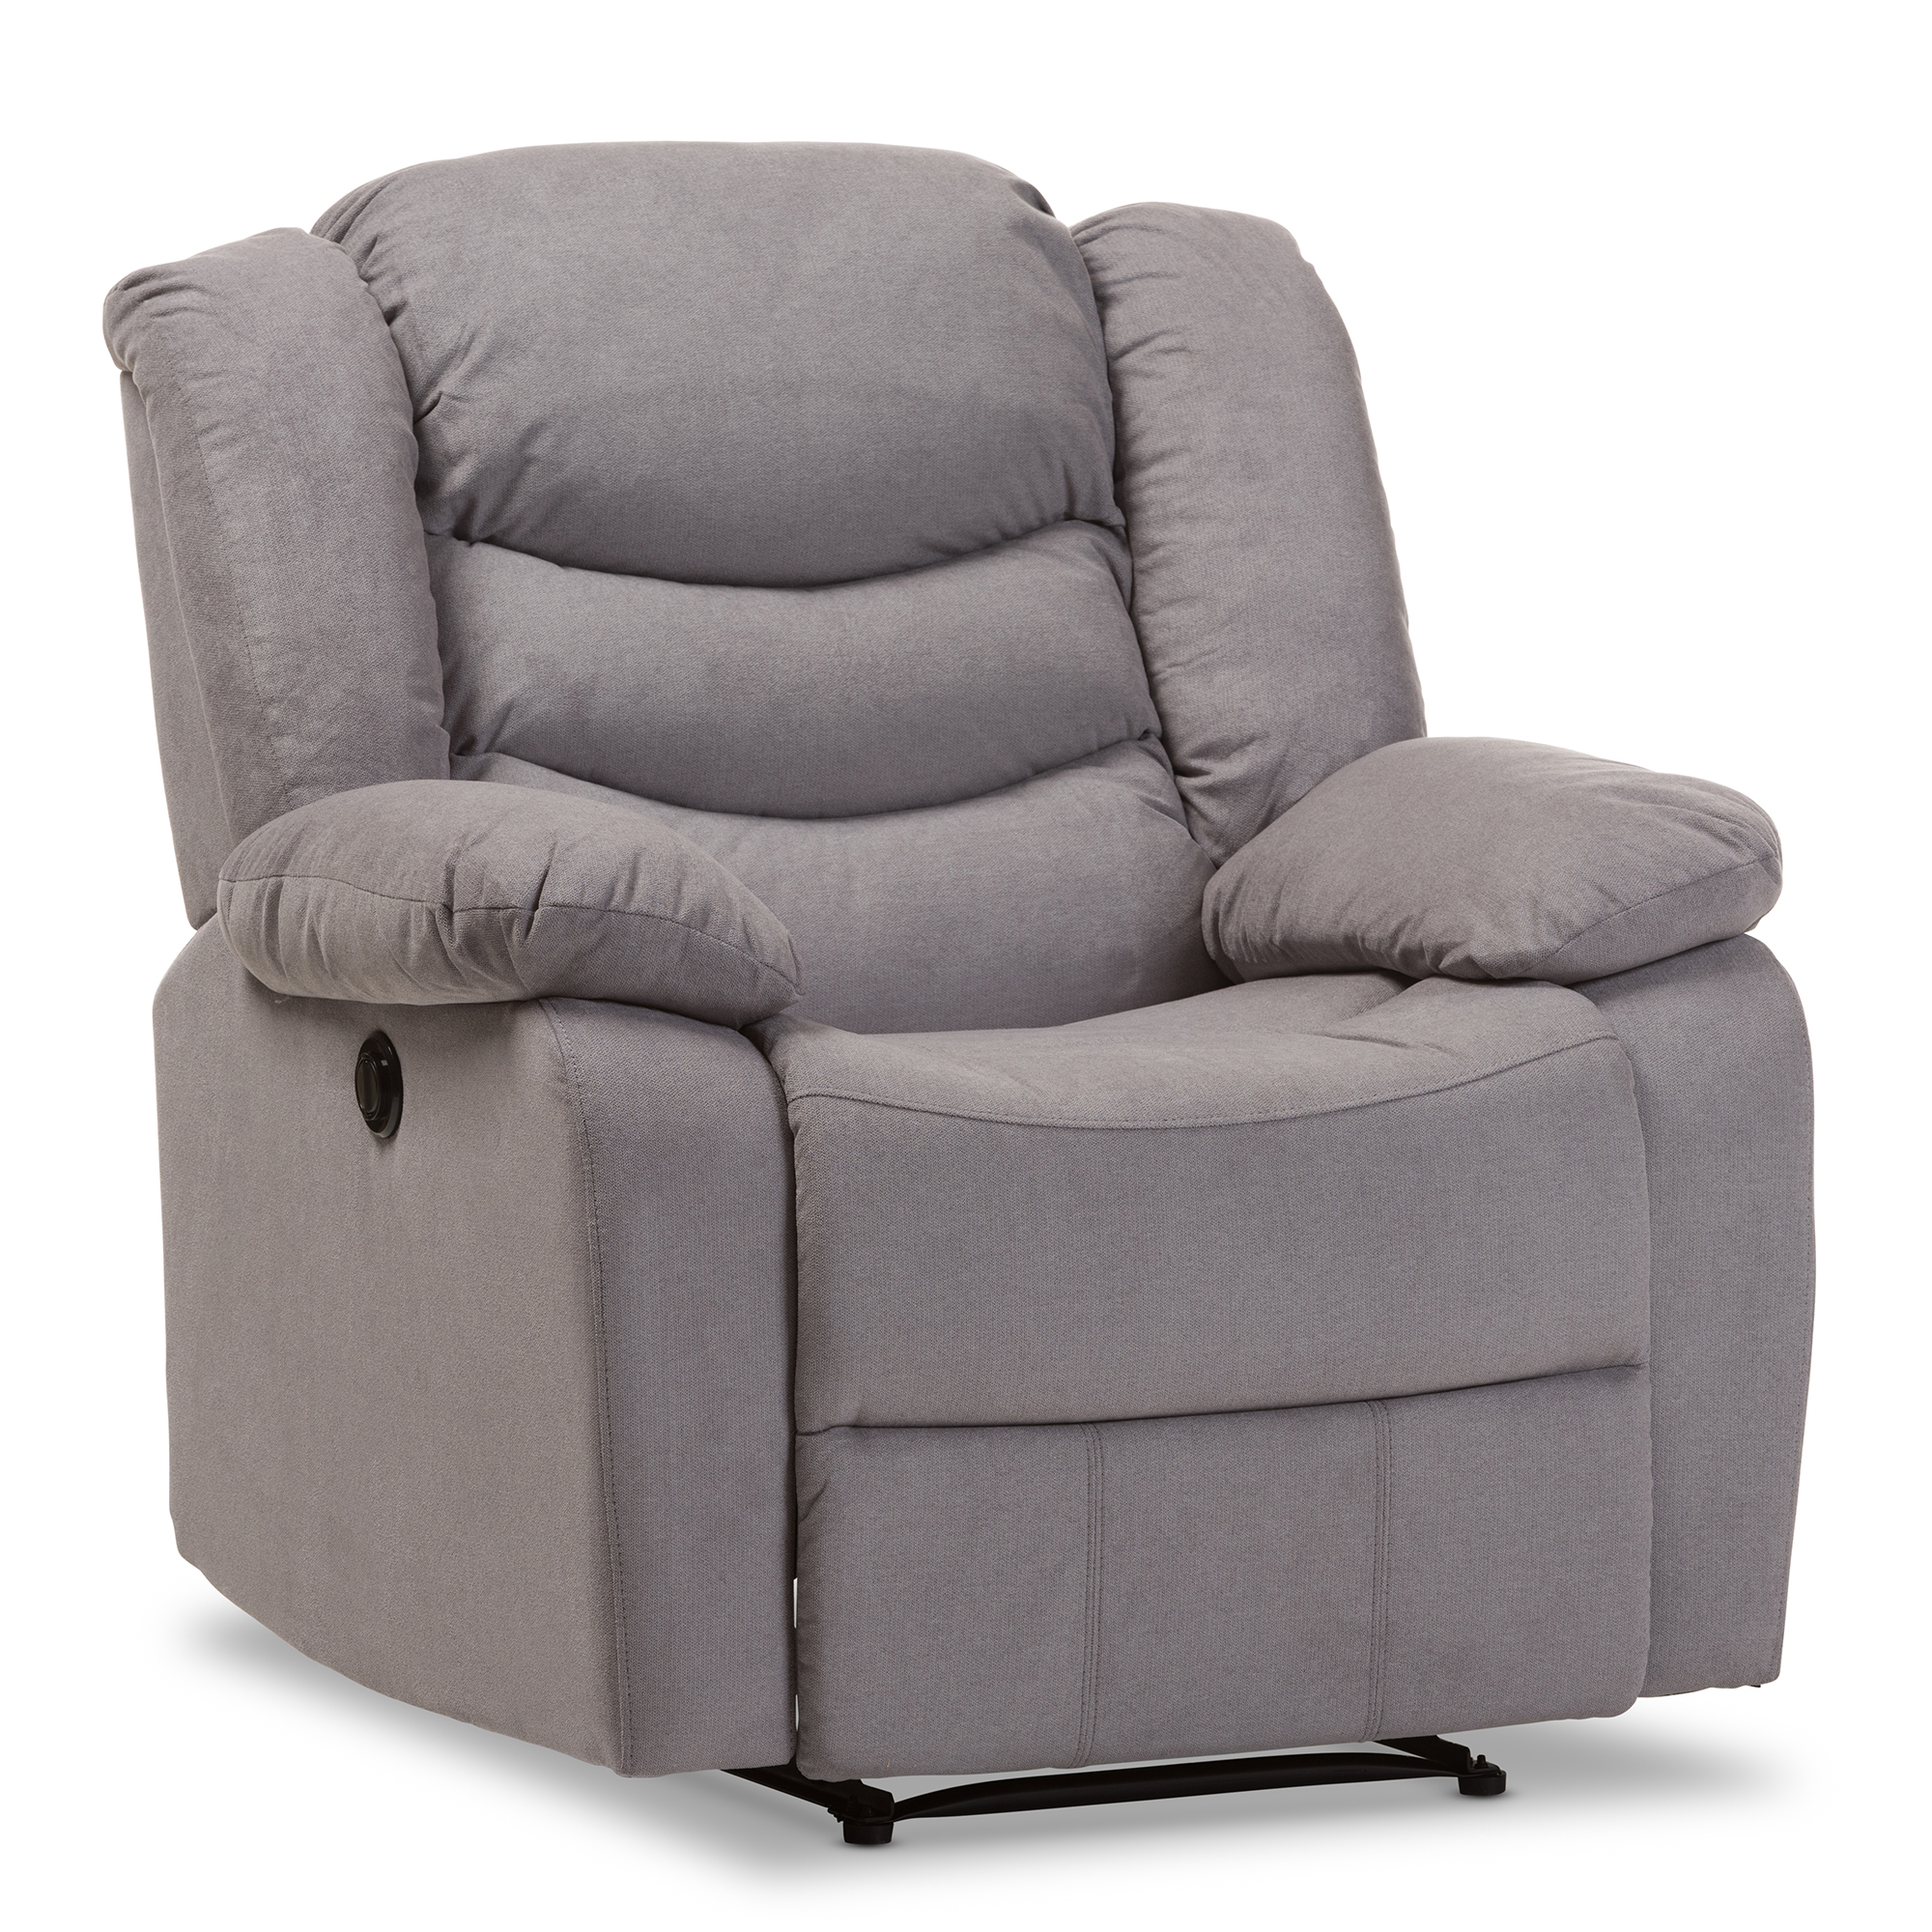 baxton studio lynette modern and grey fabric power recliner chair